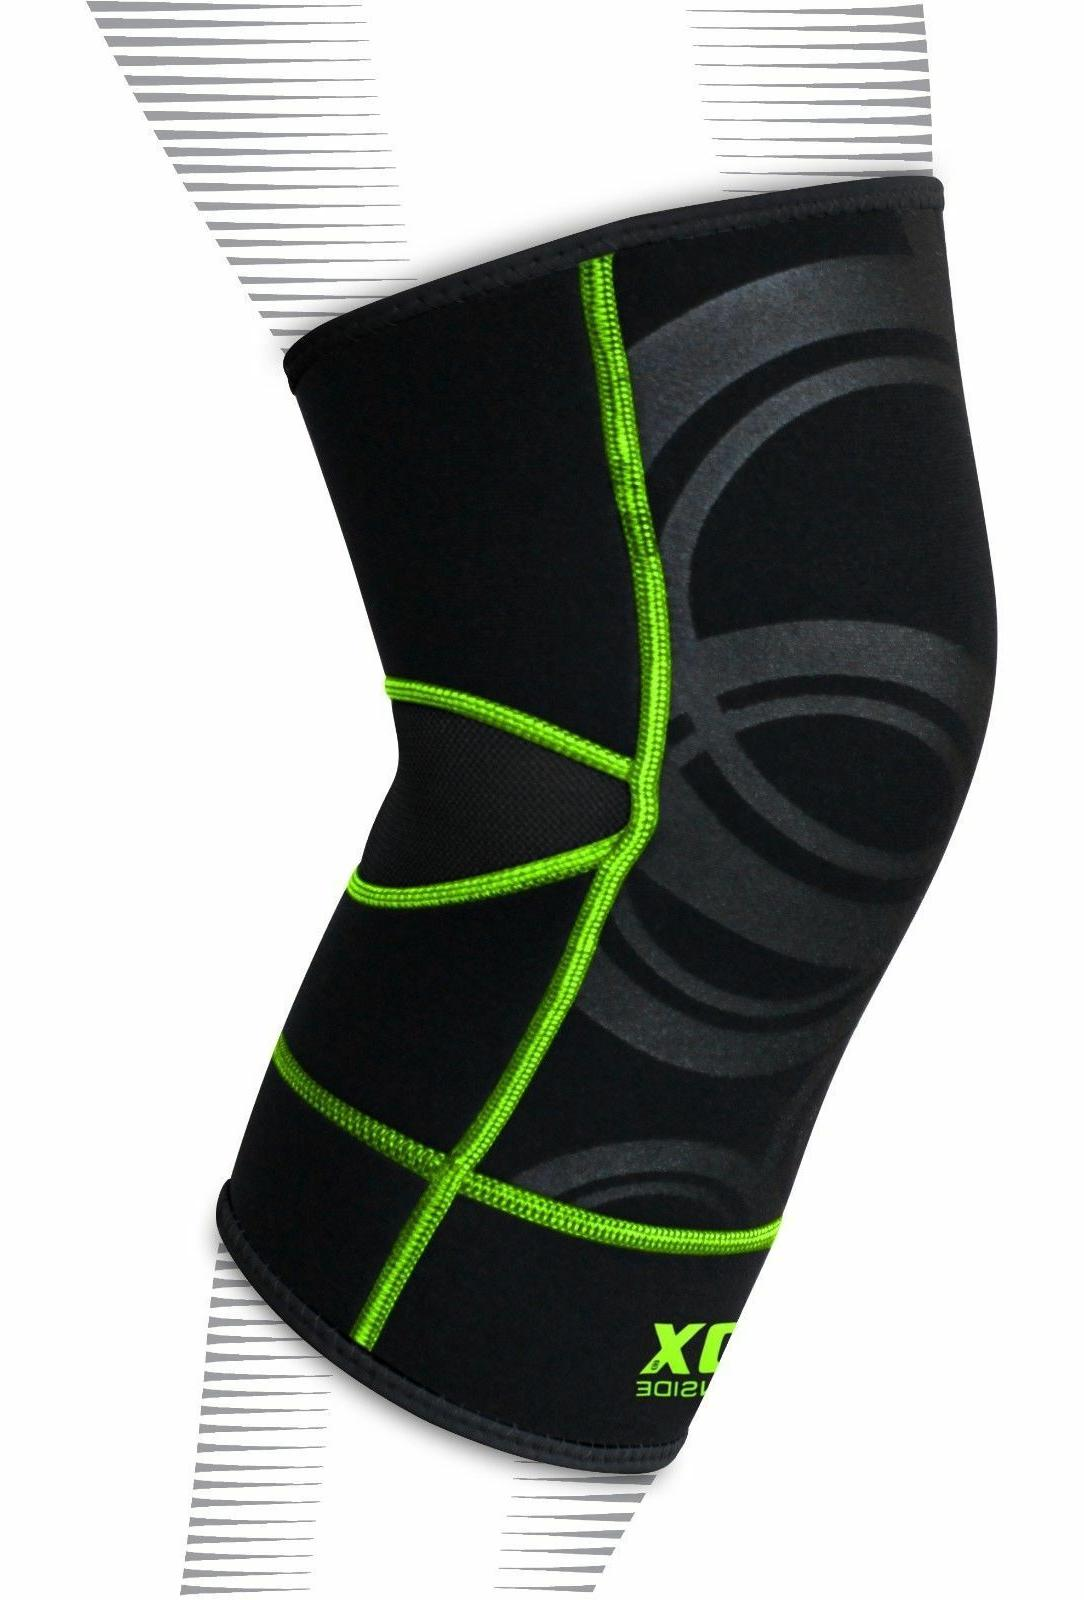 RDX Knee Support Protector Leg Wrap Guard